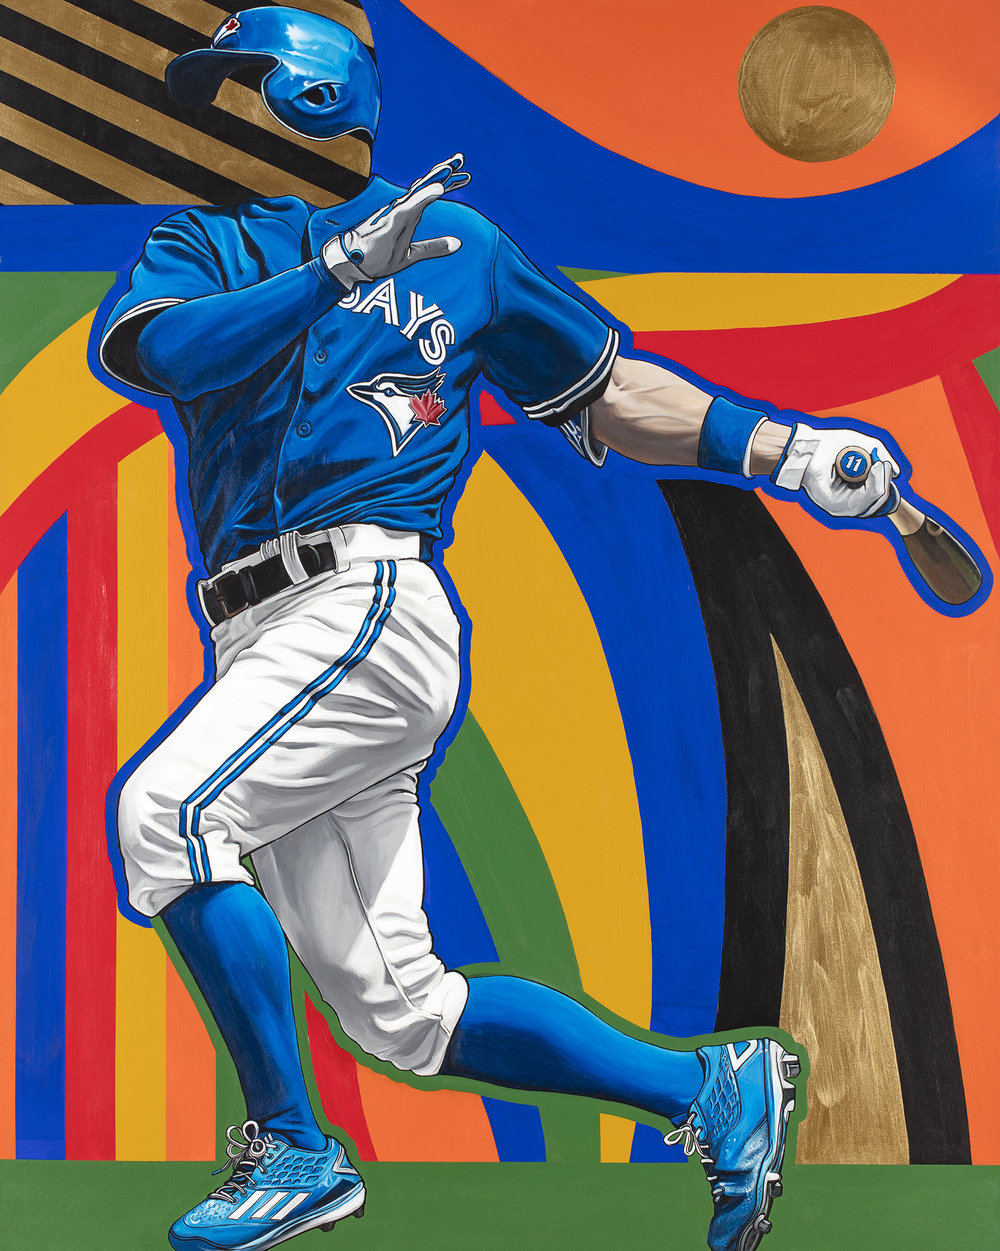 PILLAR BY SAMARA SHUTER 2016 BLUE JAYS.jpg